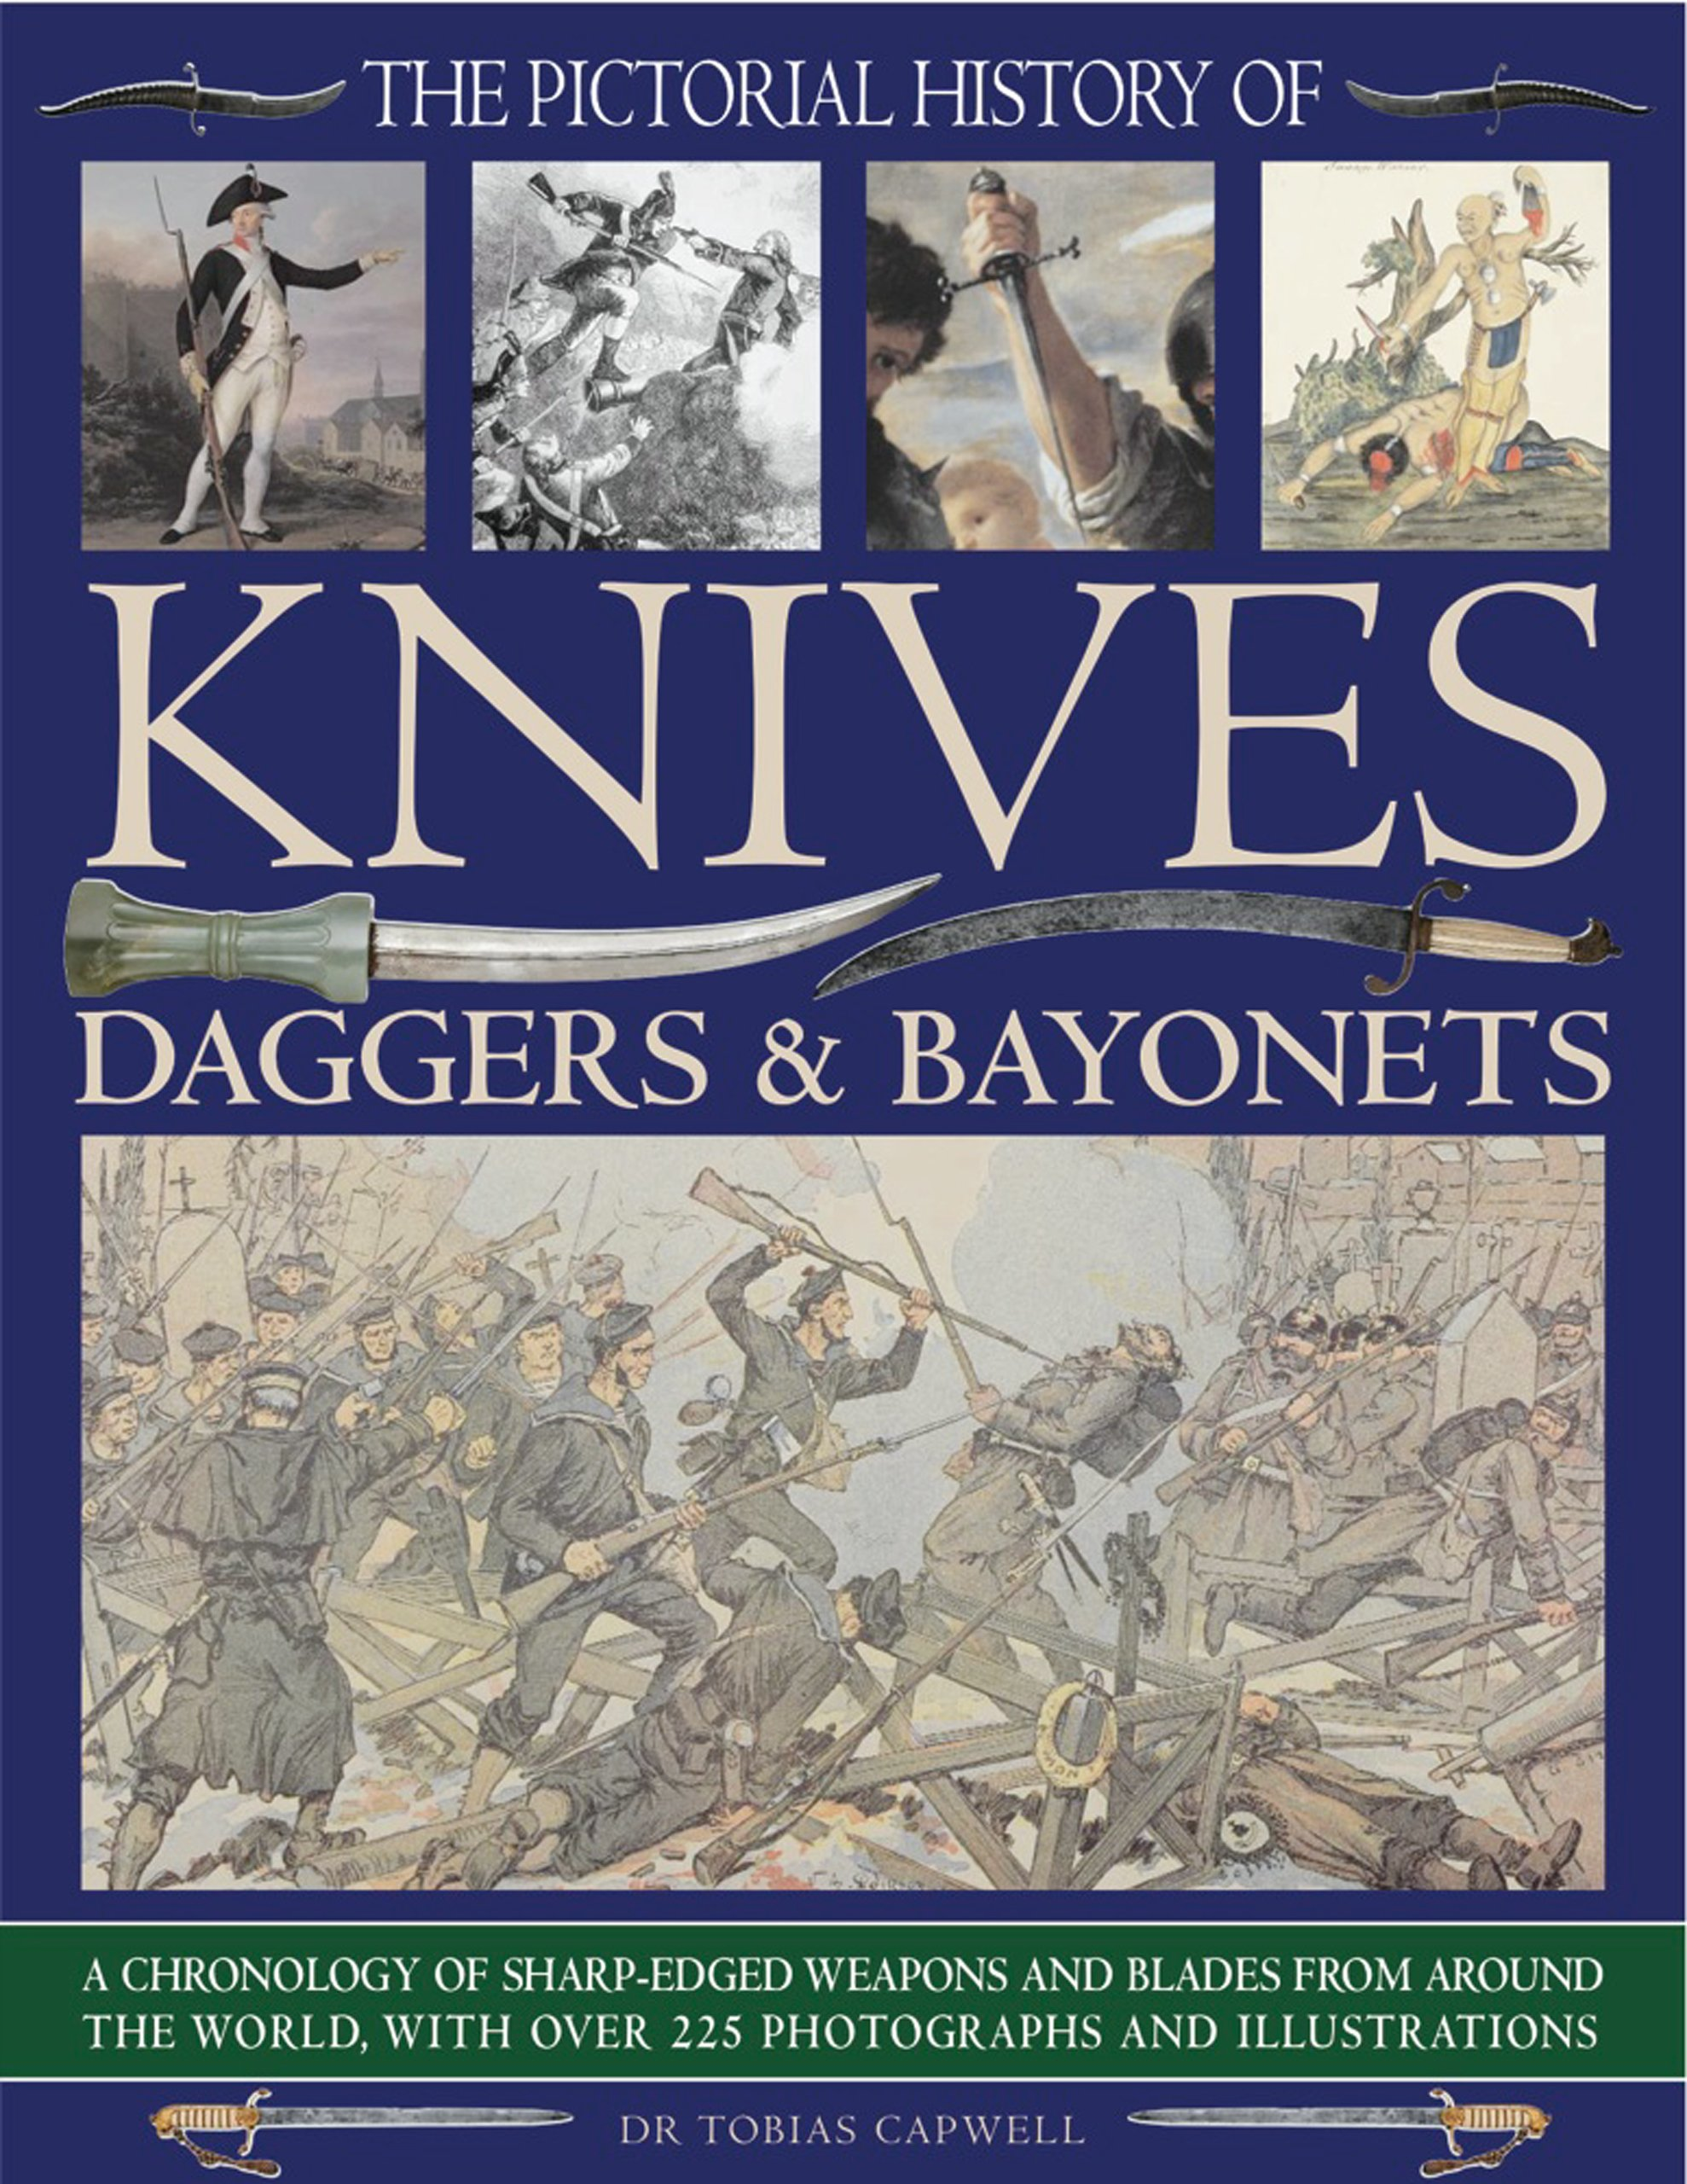 The Pictorial History of Knives, Daggers & Bayonets